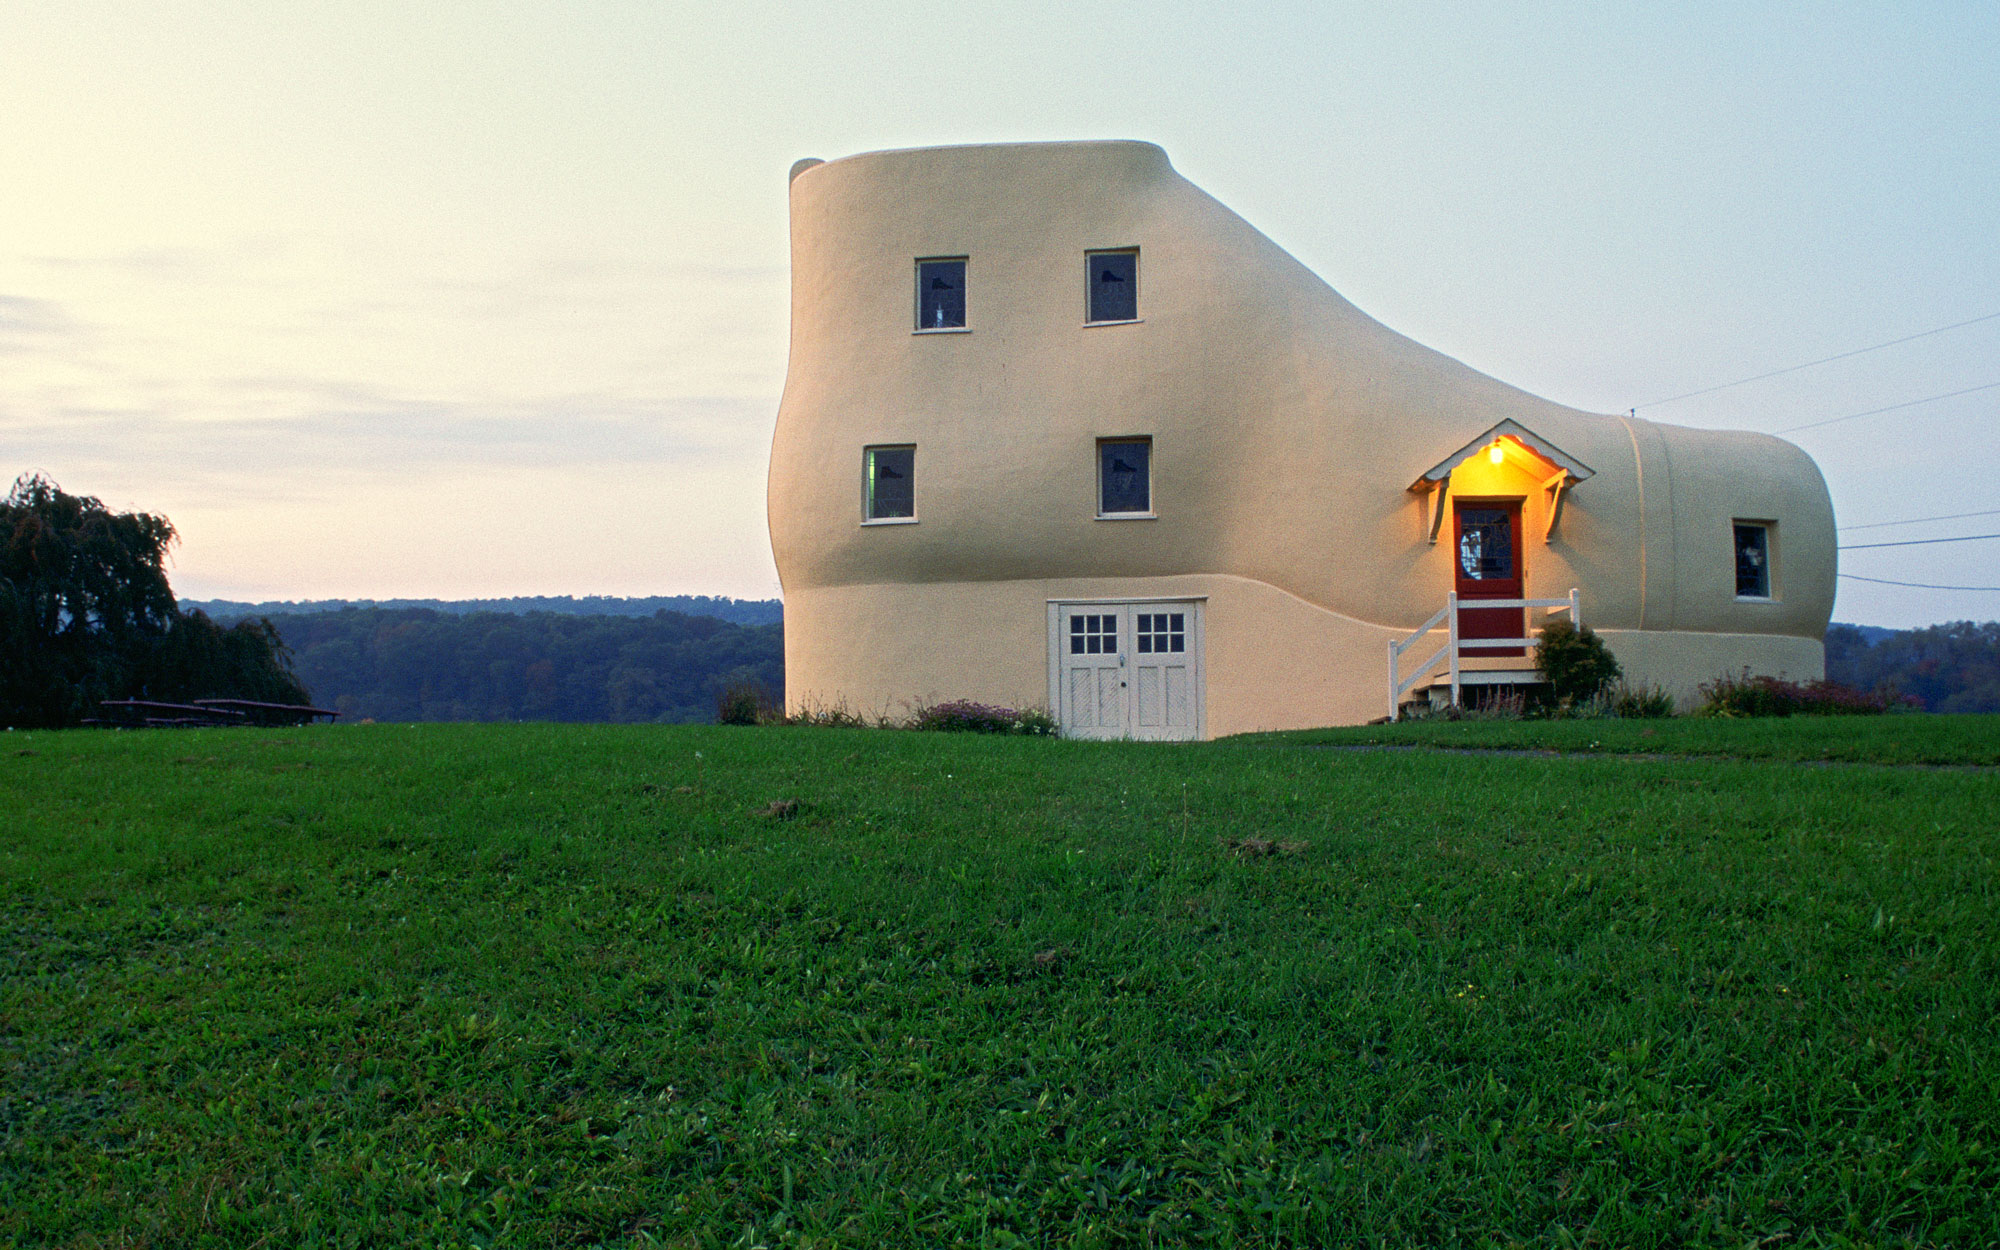 Weirdest Roadside Attractions: Pennsylvania: Shoe House